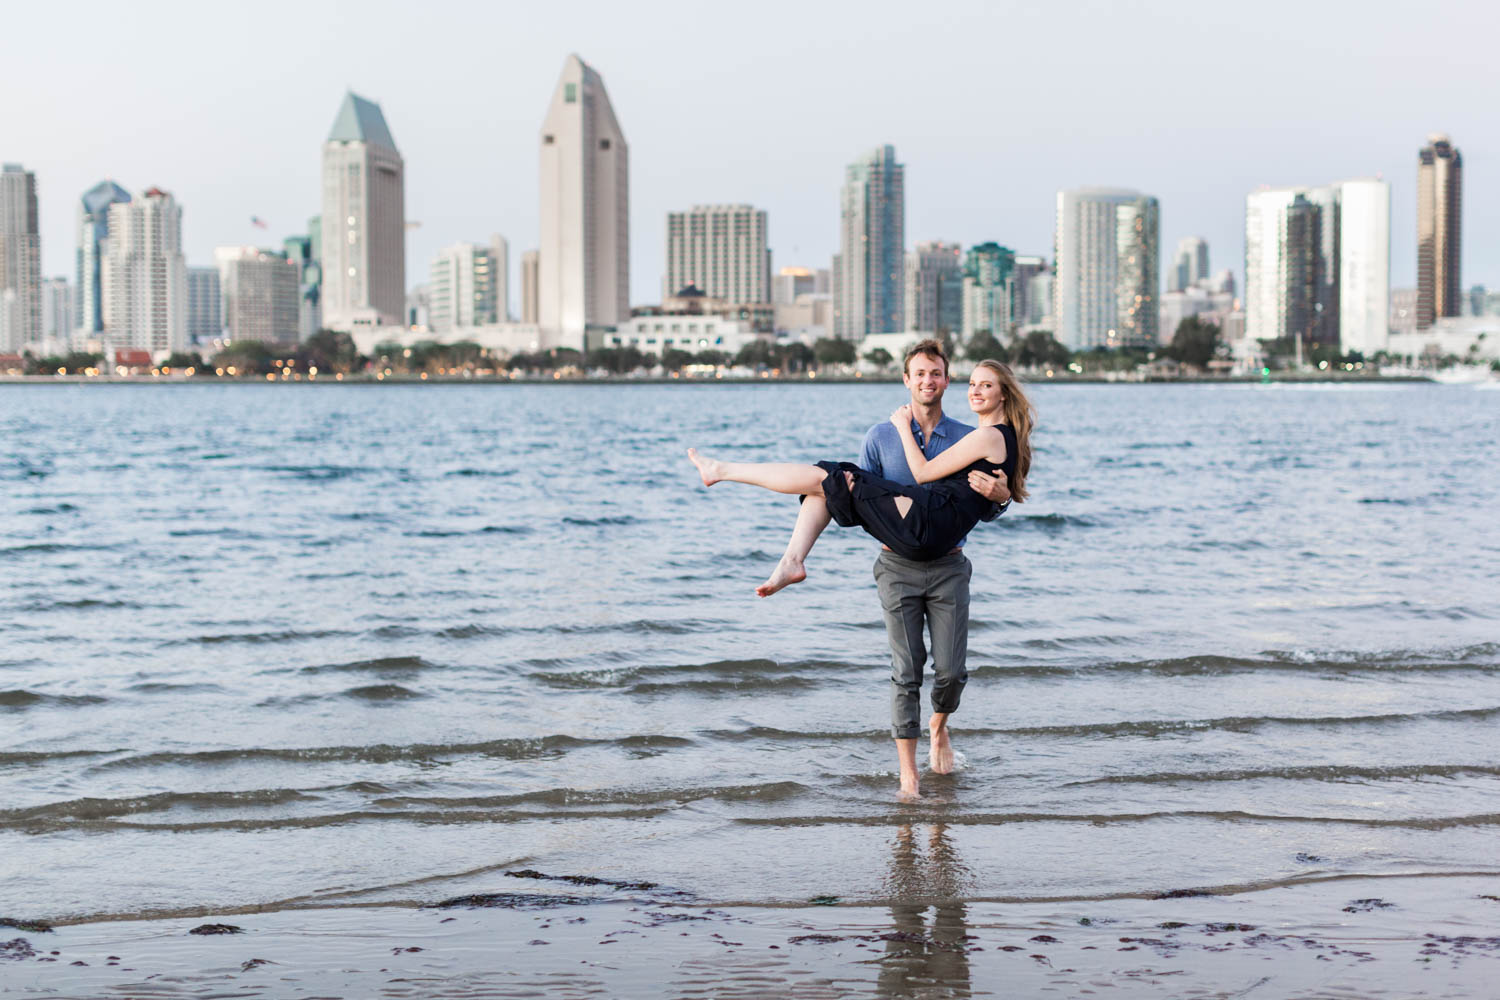 Dreamy End of Summer Coronado Sailboat Engagement Photos